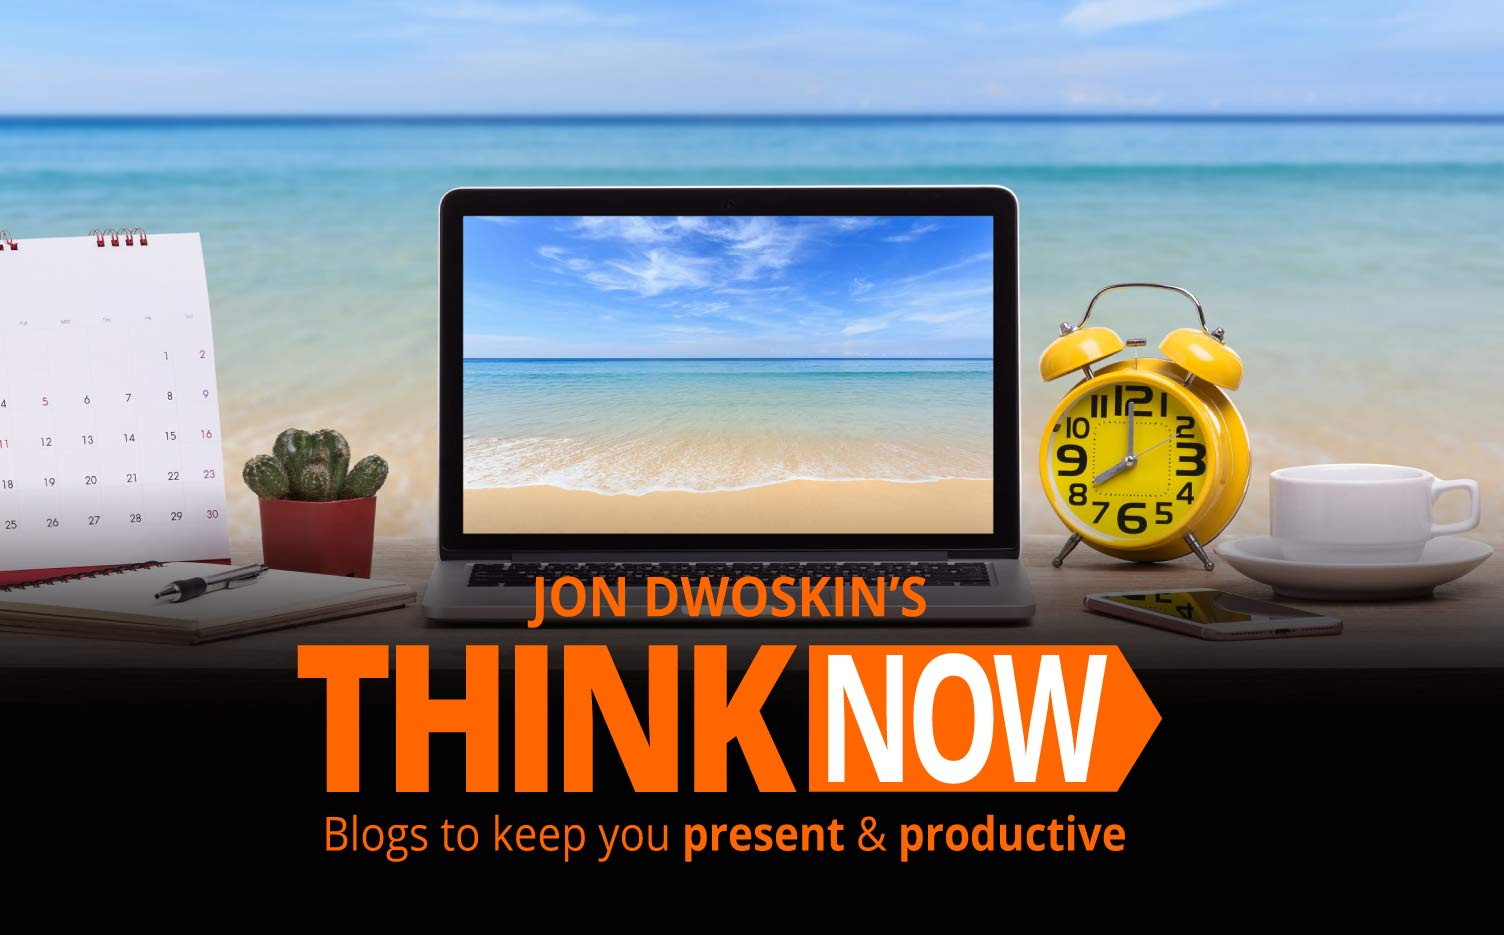 Jon Dwoskin's THINK NOW Blog: Stay Focused This Summer